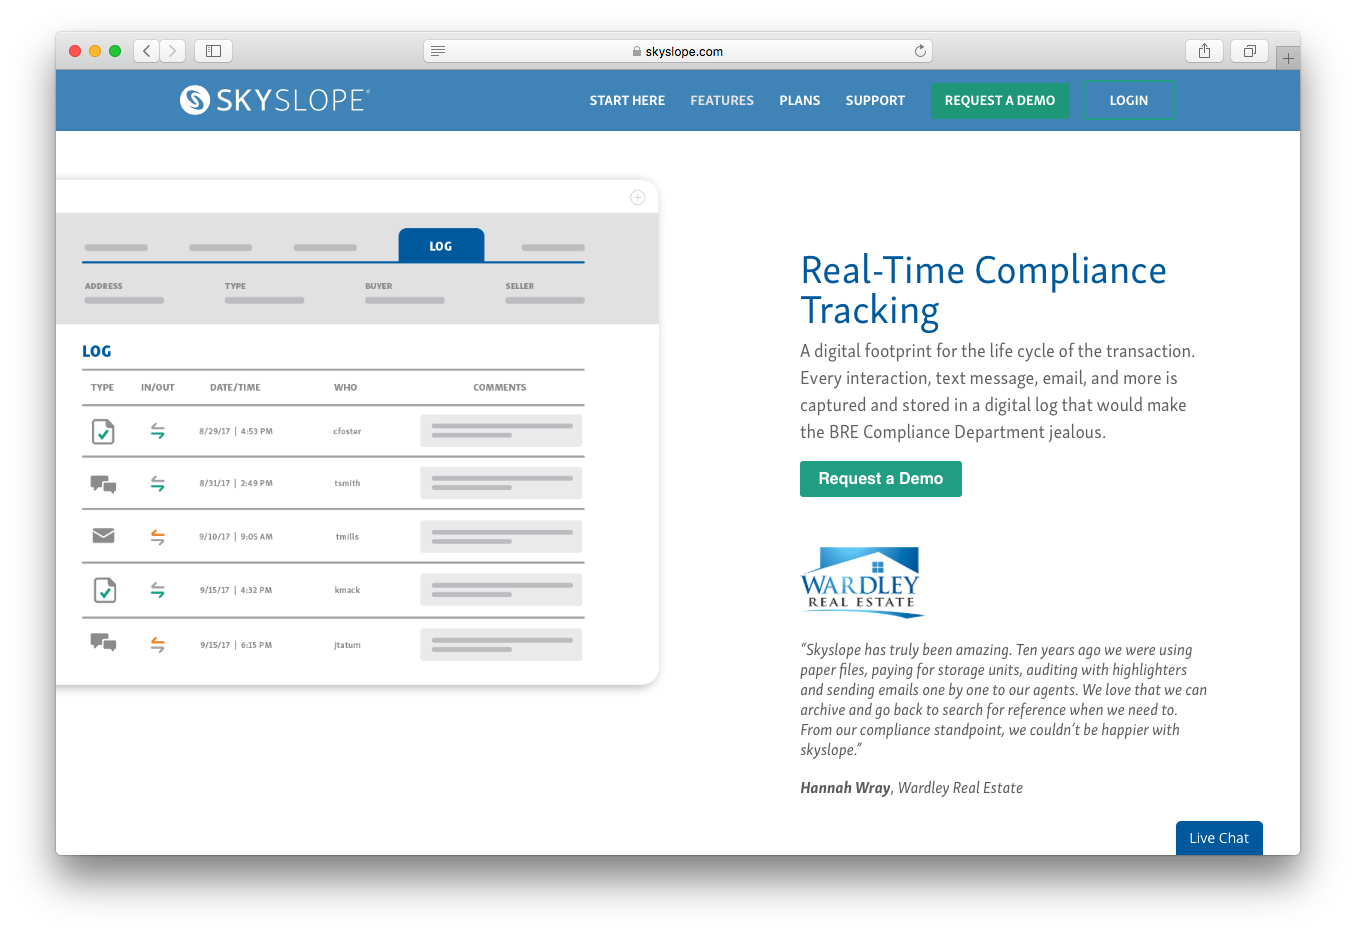 SkySlope real time compliance tracking transaction interactions